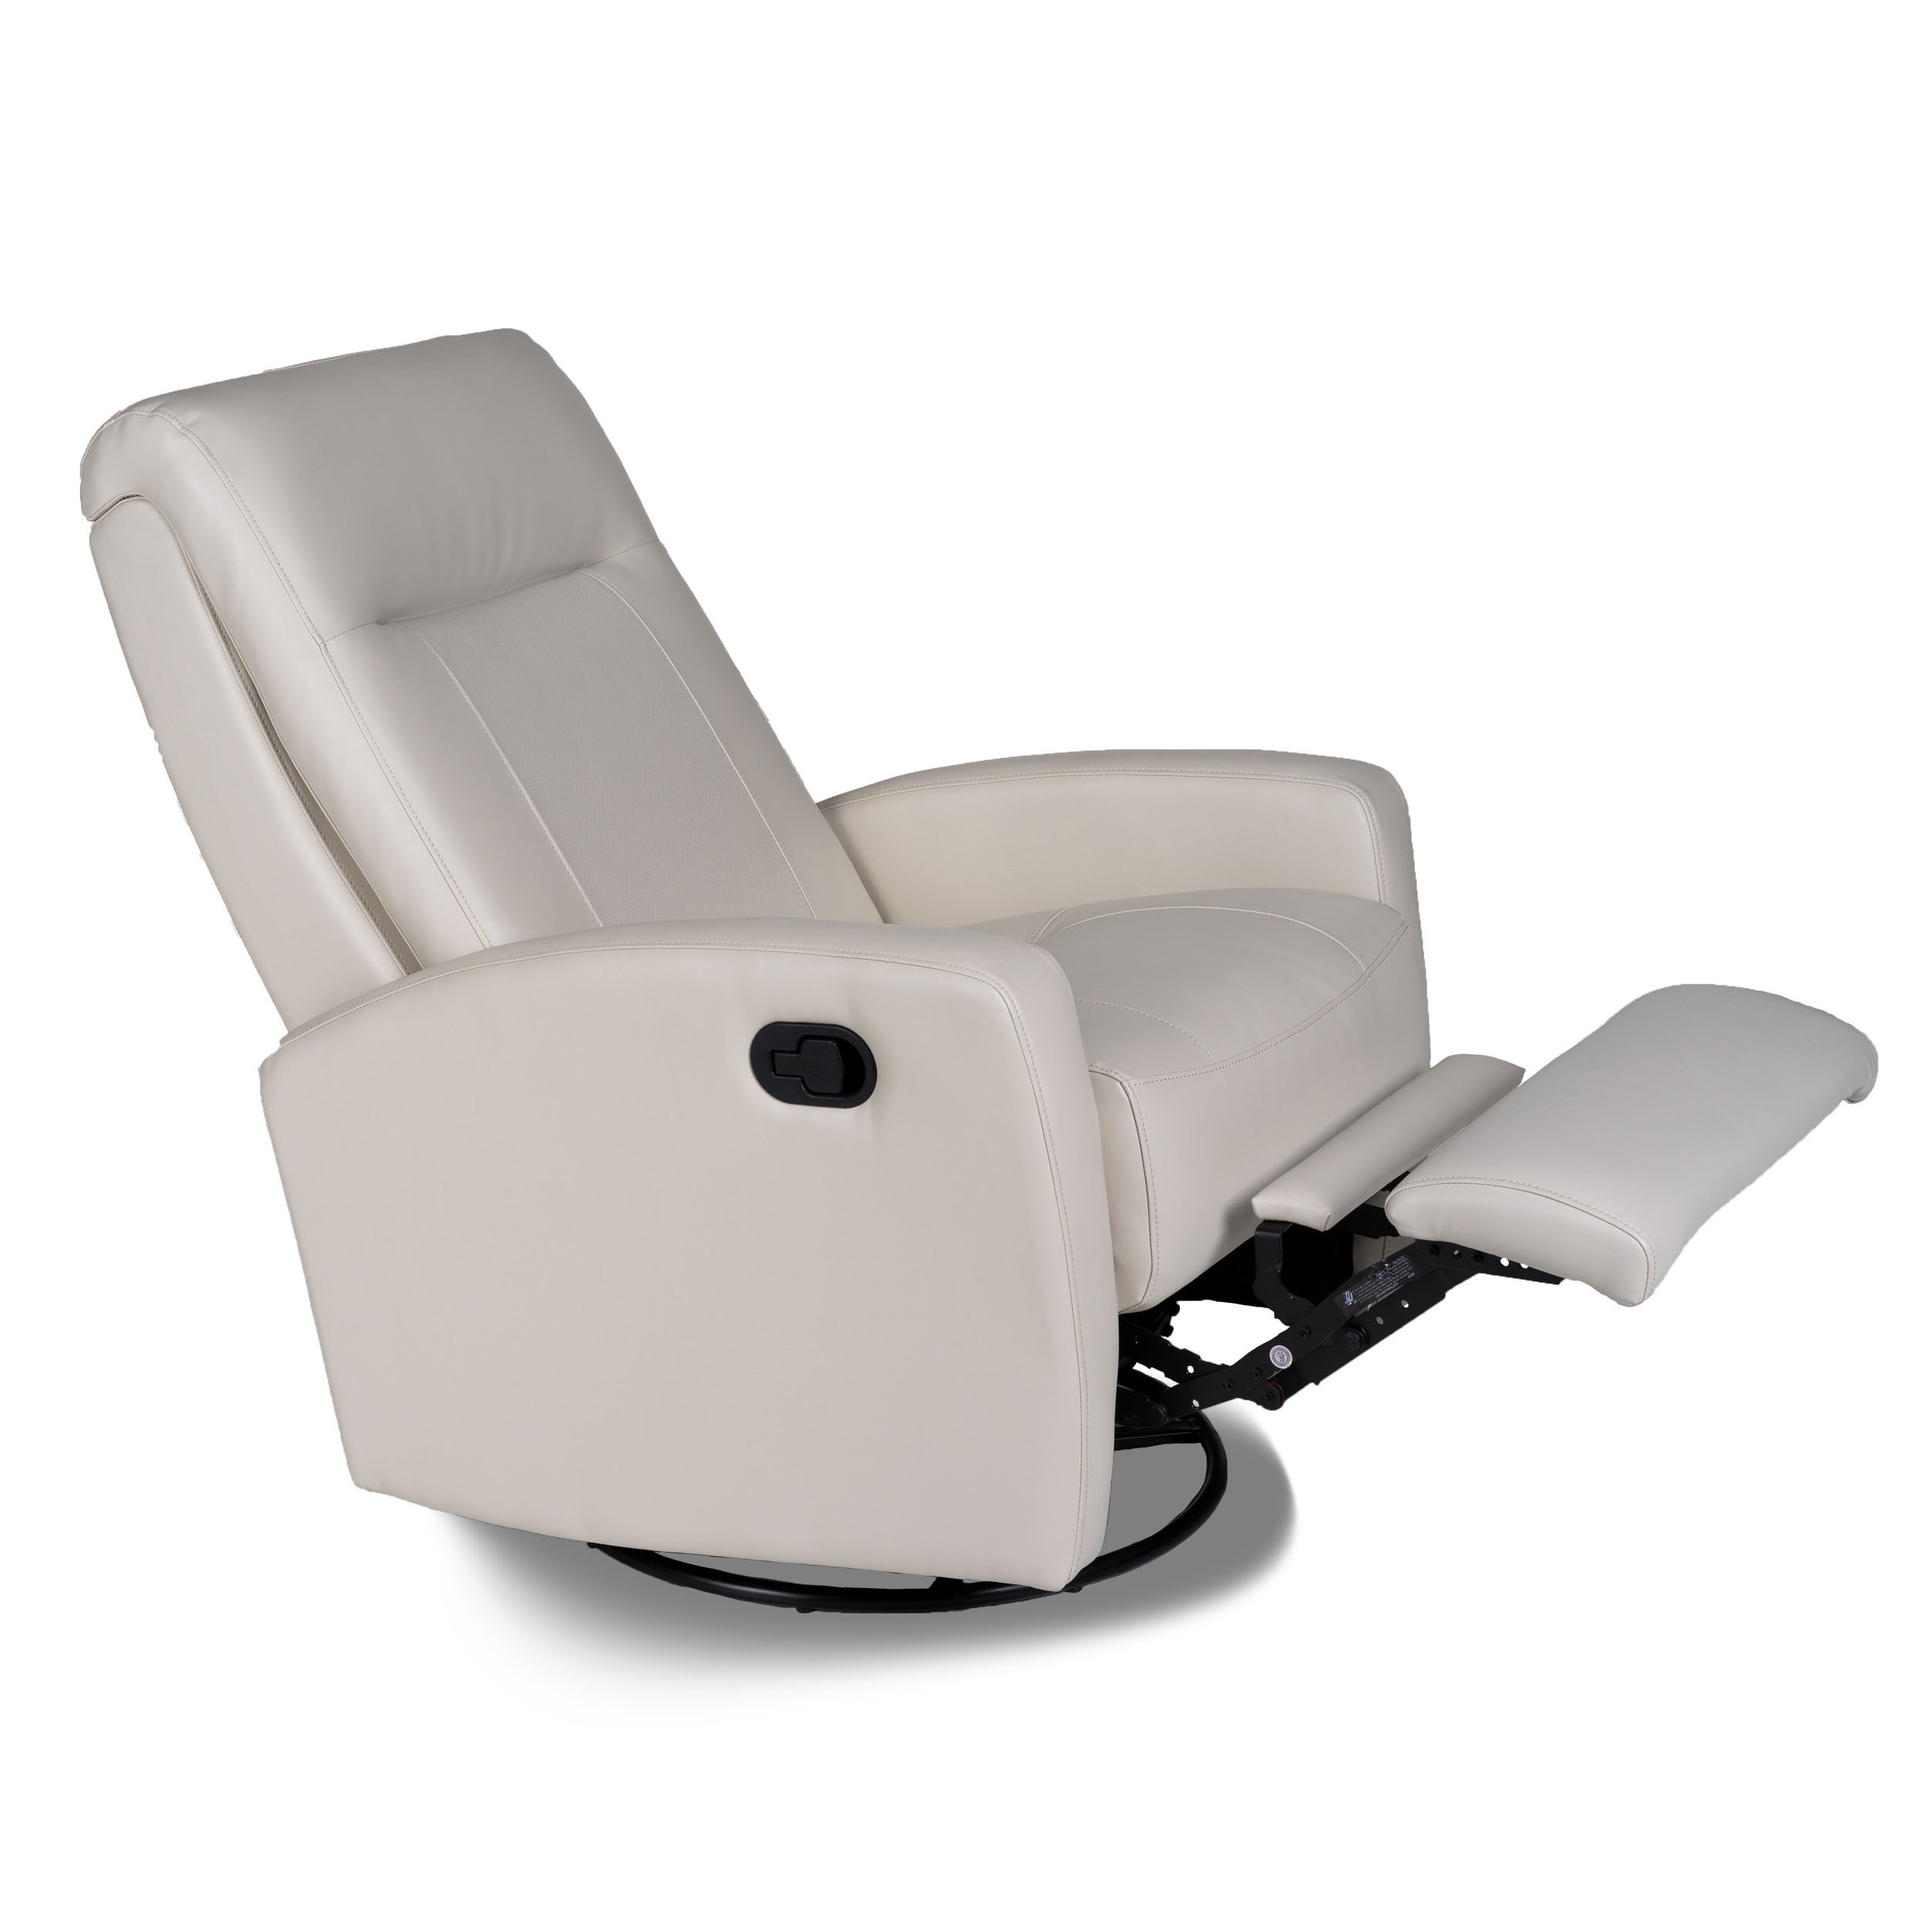 Furniture & Rug Classy Glider Recliner For Home Furniture Idea